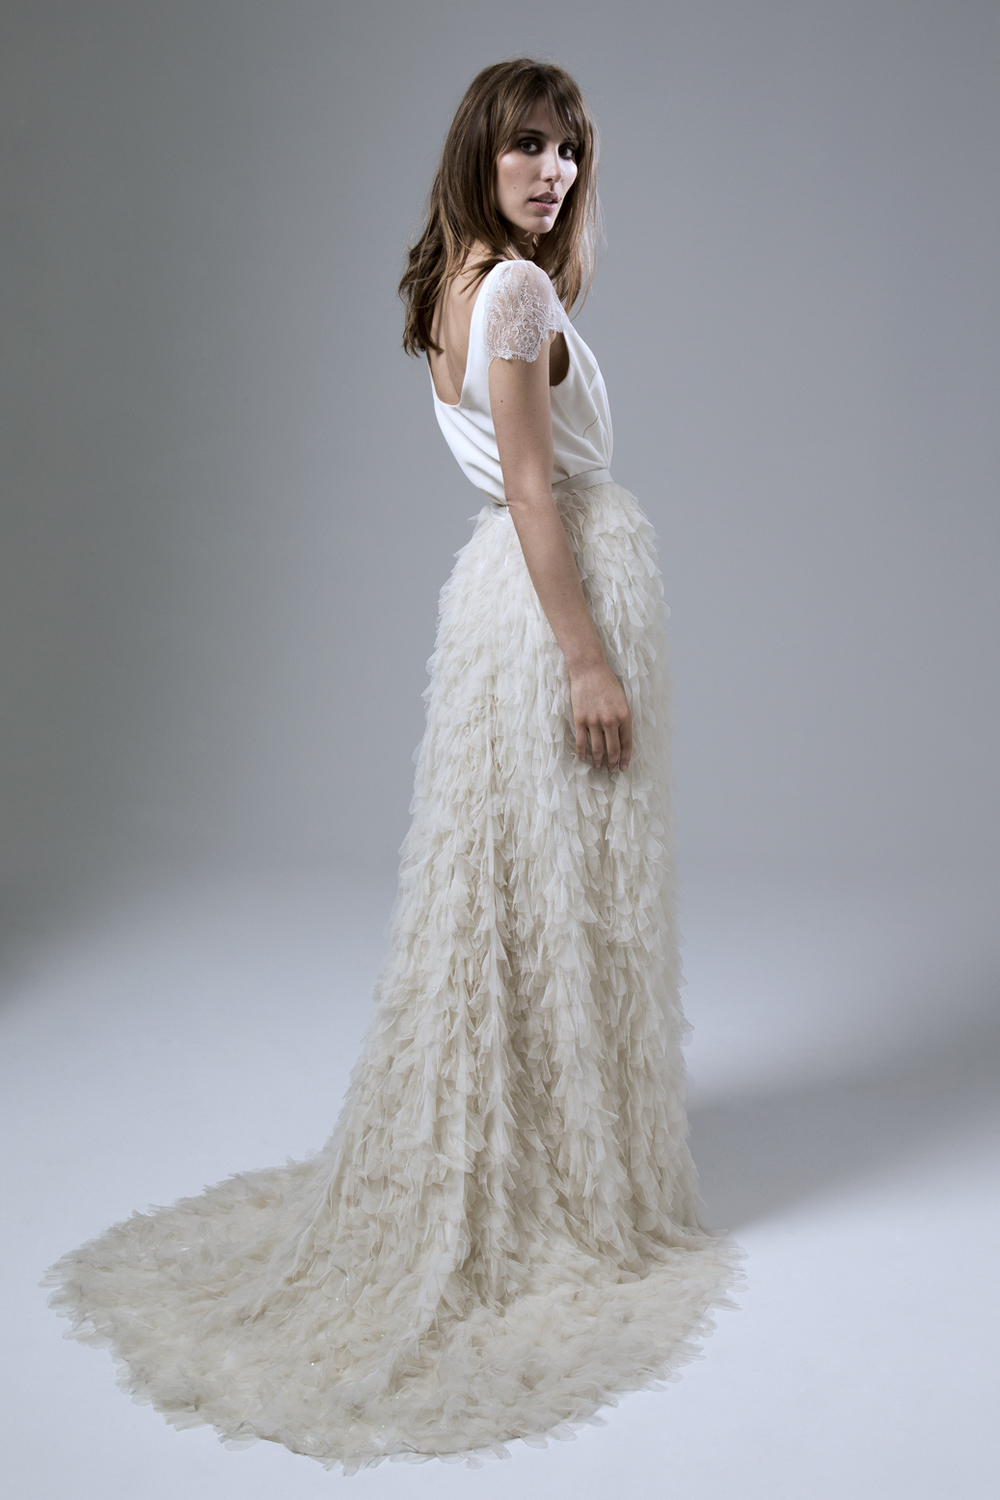 SWAN TULLE PETAL SKIRT AND SWAN CREPE SCOOP NECK TEE WITH CHANTILLY LACE SLEEVES WEDDING DRESS BY HALFPENNY LONDON